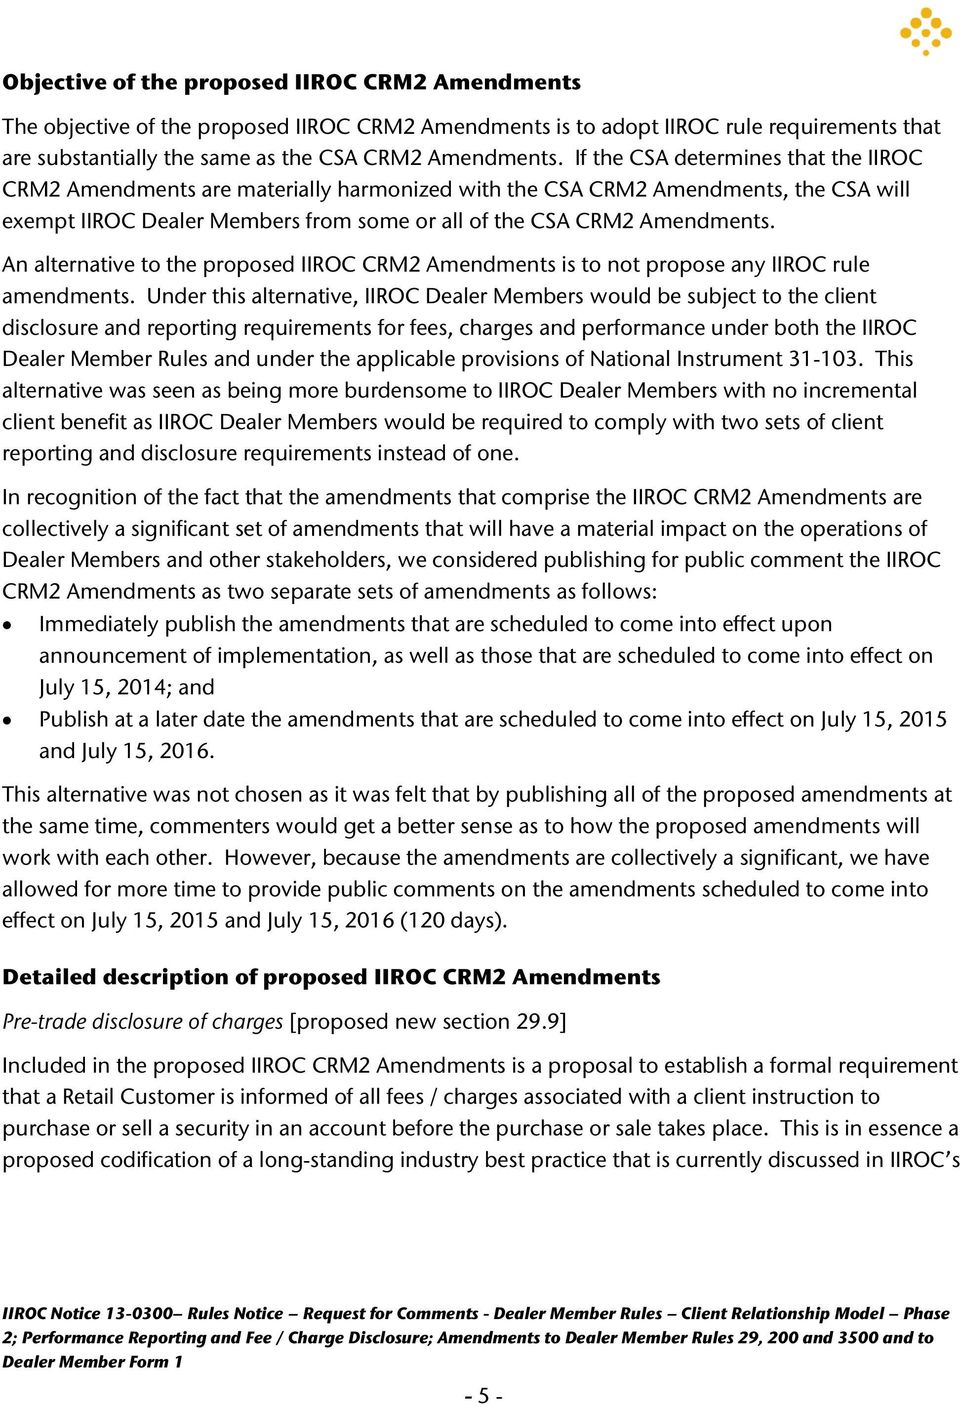 An alternative to the proposed IIROC CRM2 Amendments is to not propose any IIROC rule amendments.